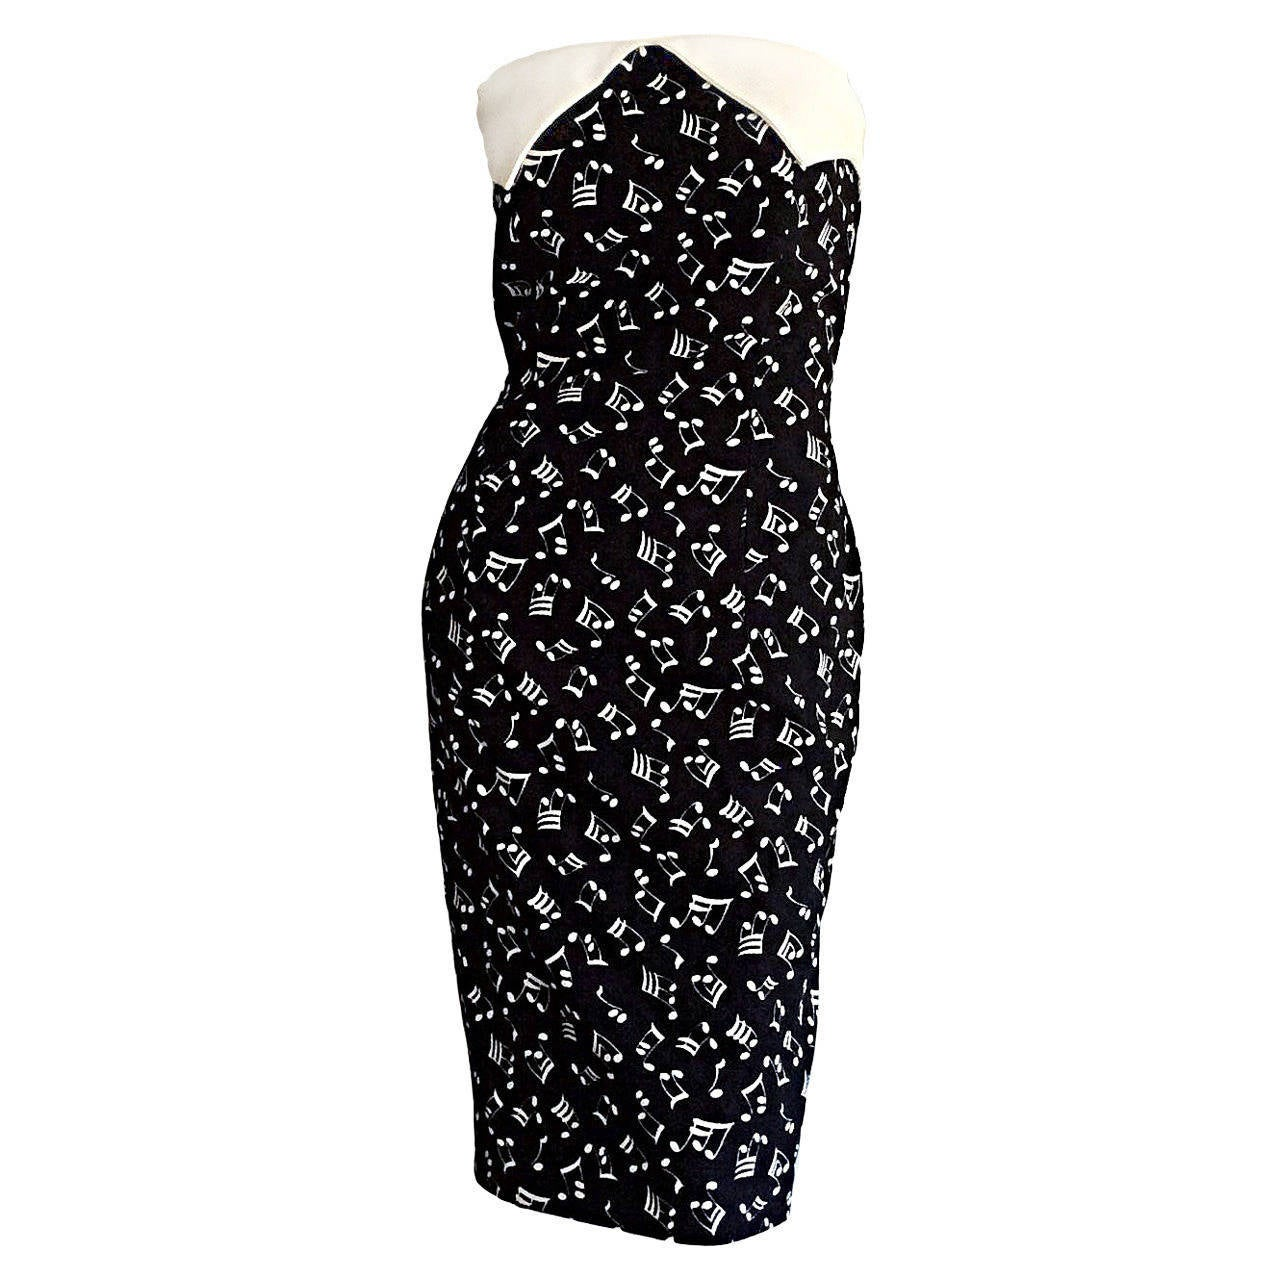 Iconic Vintage Patrick Kelly ' Music Notes ' Strapless Cotton Dress 1